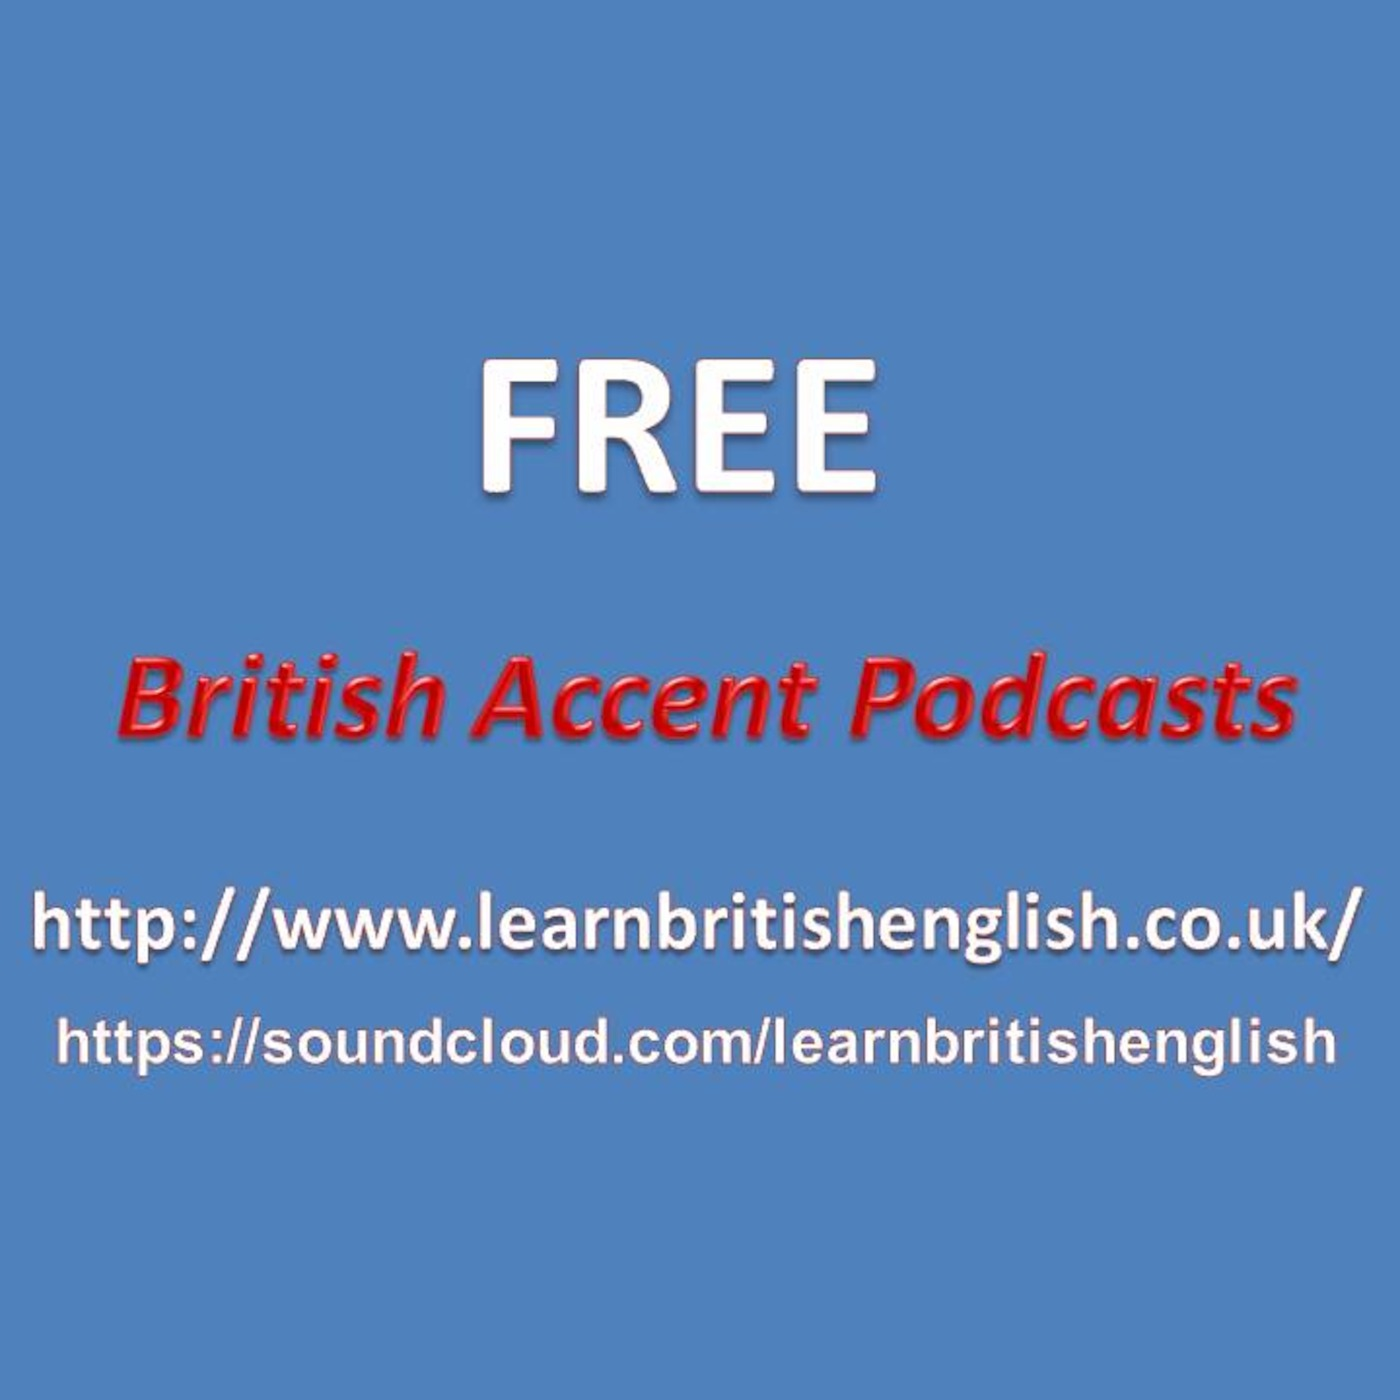 British Accent Podcasts on Apple Podcasts